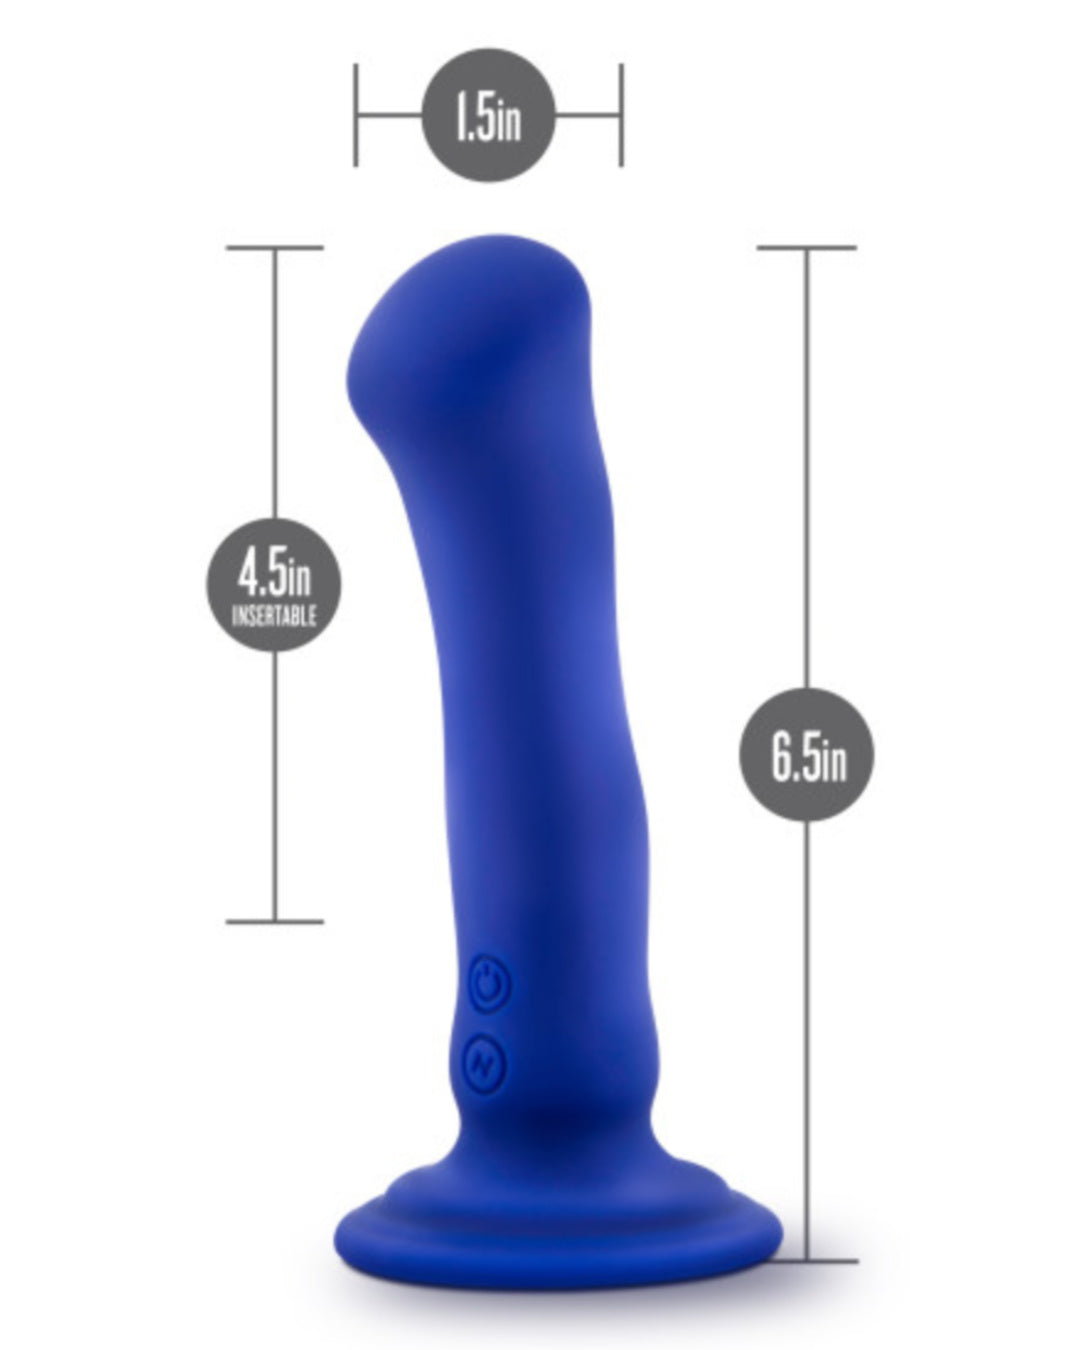 Impressions N2 Silicone G-Spot Vibrator with Suction Cup by Blush - Blue